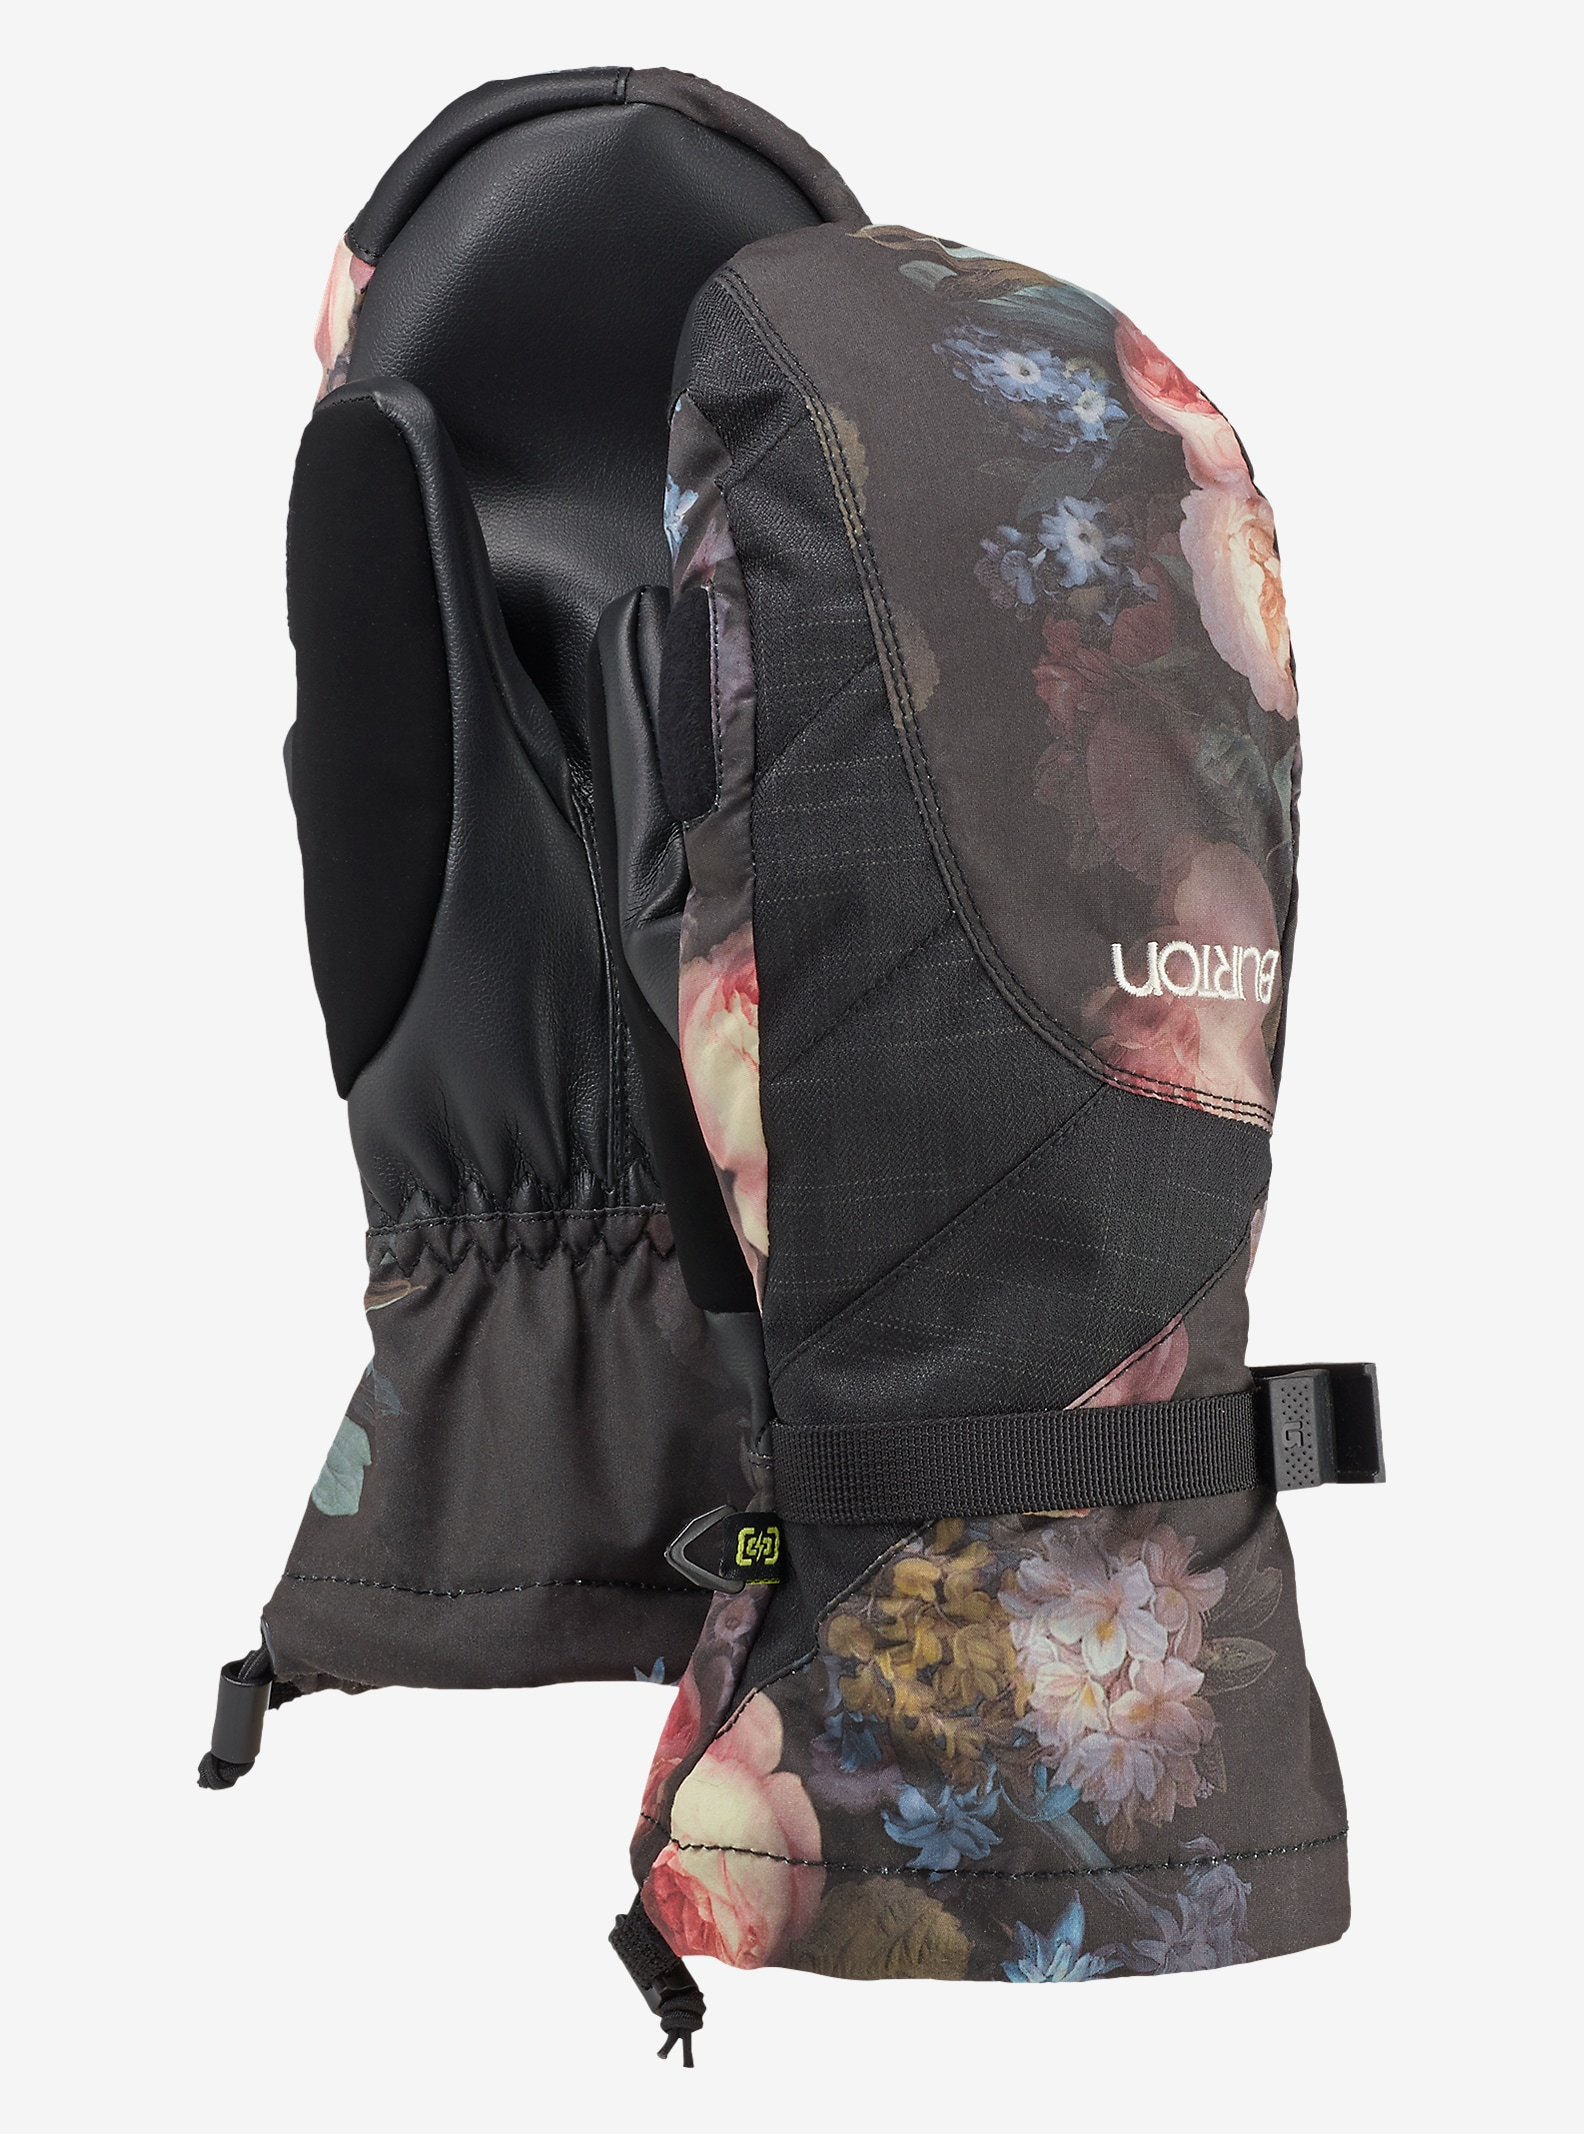 Burton Women's Approach Mitt shown in Lowland Floral